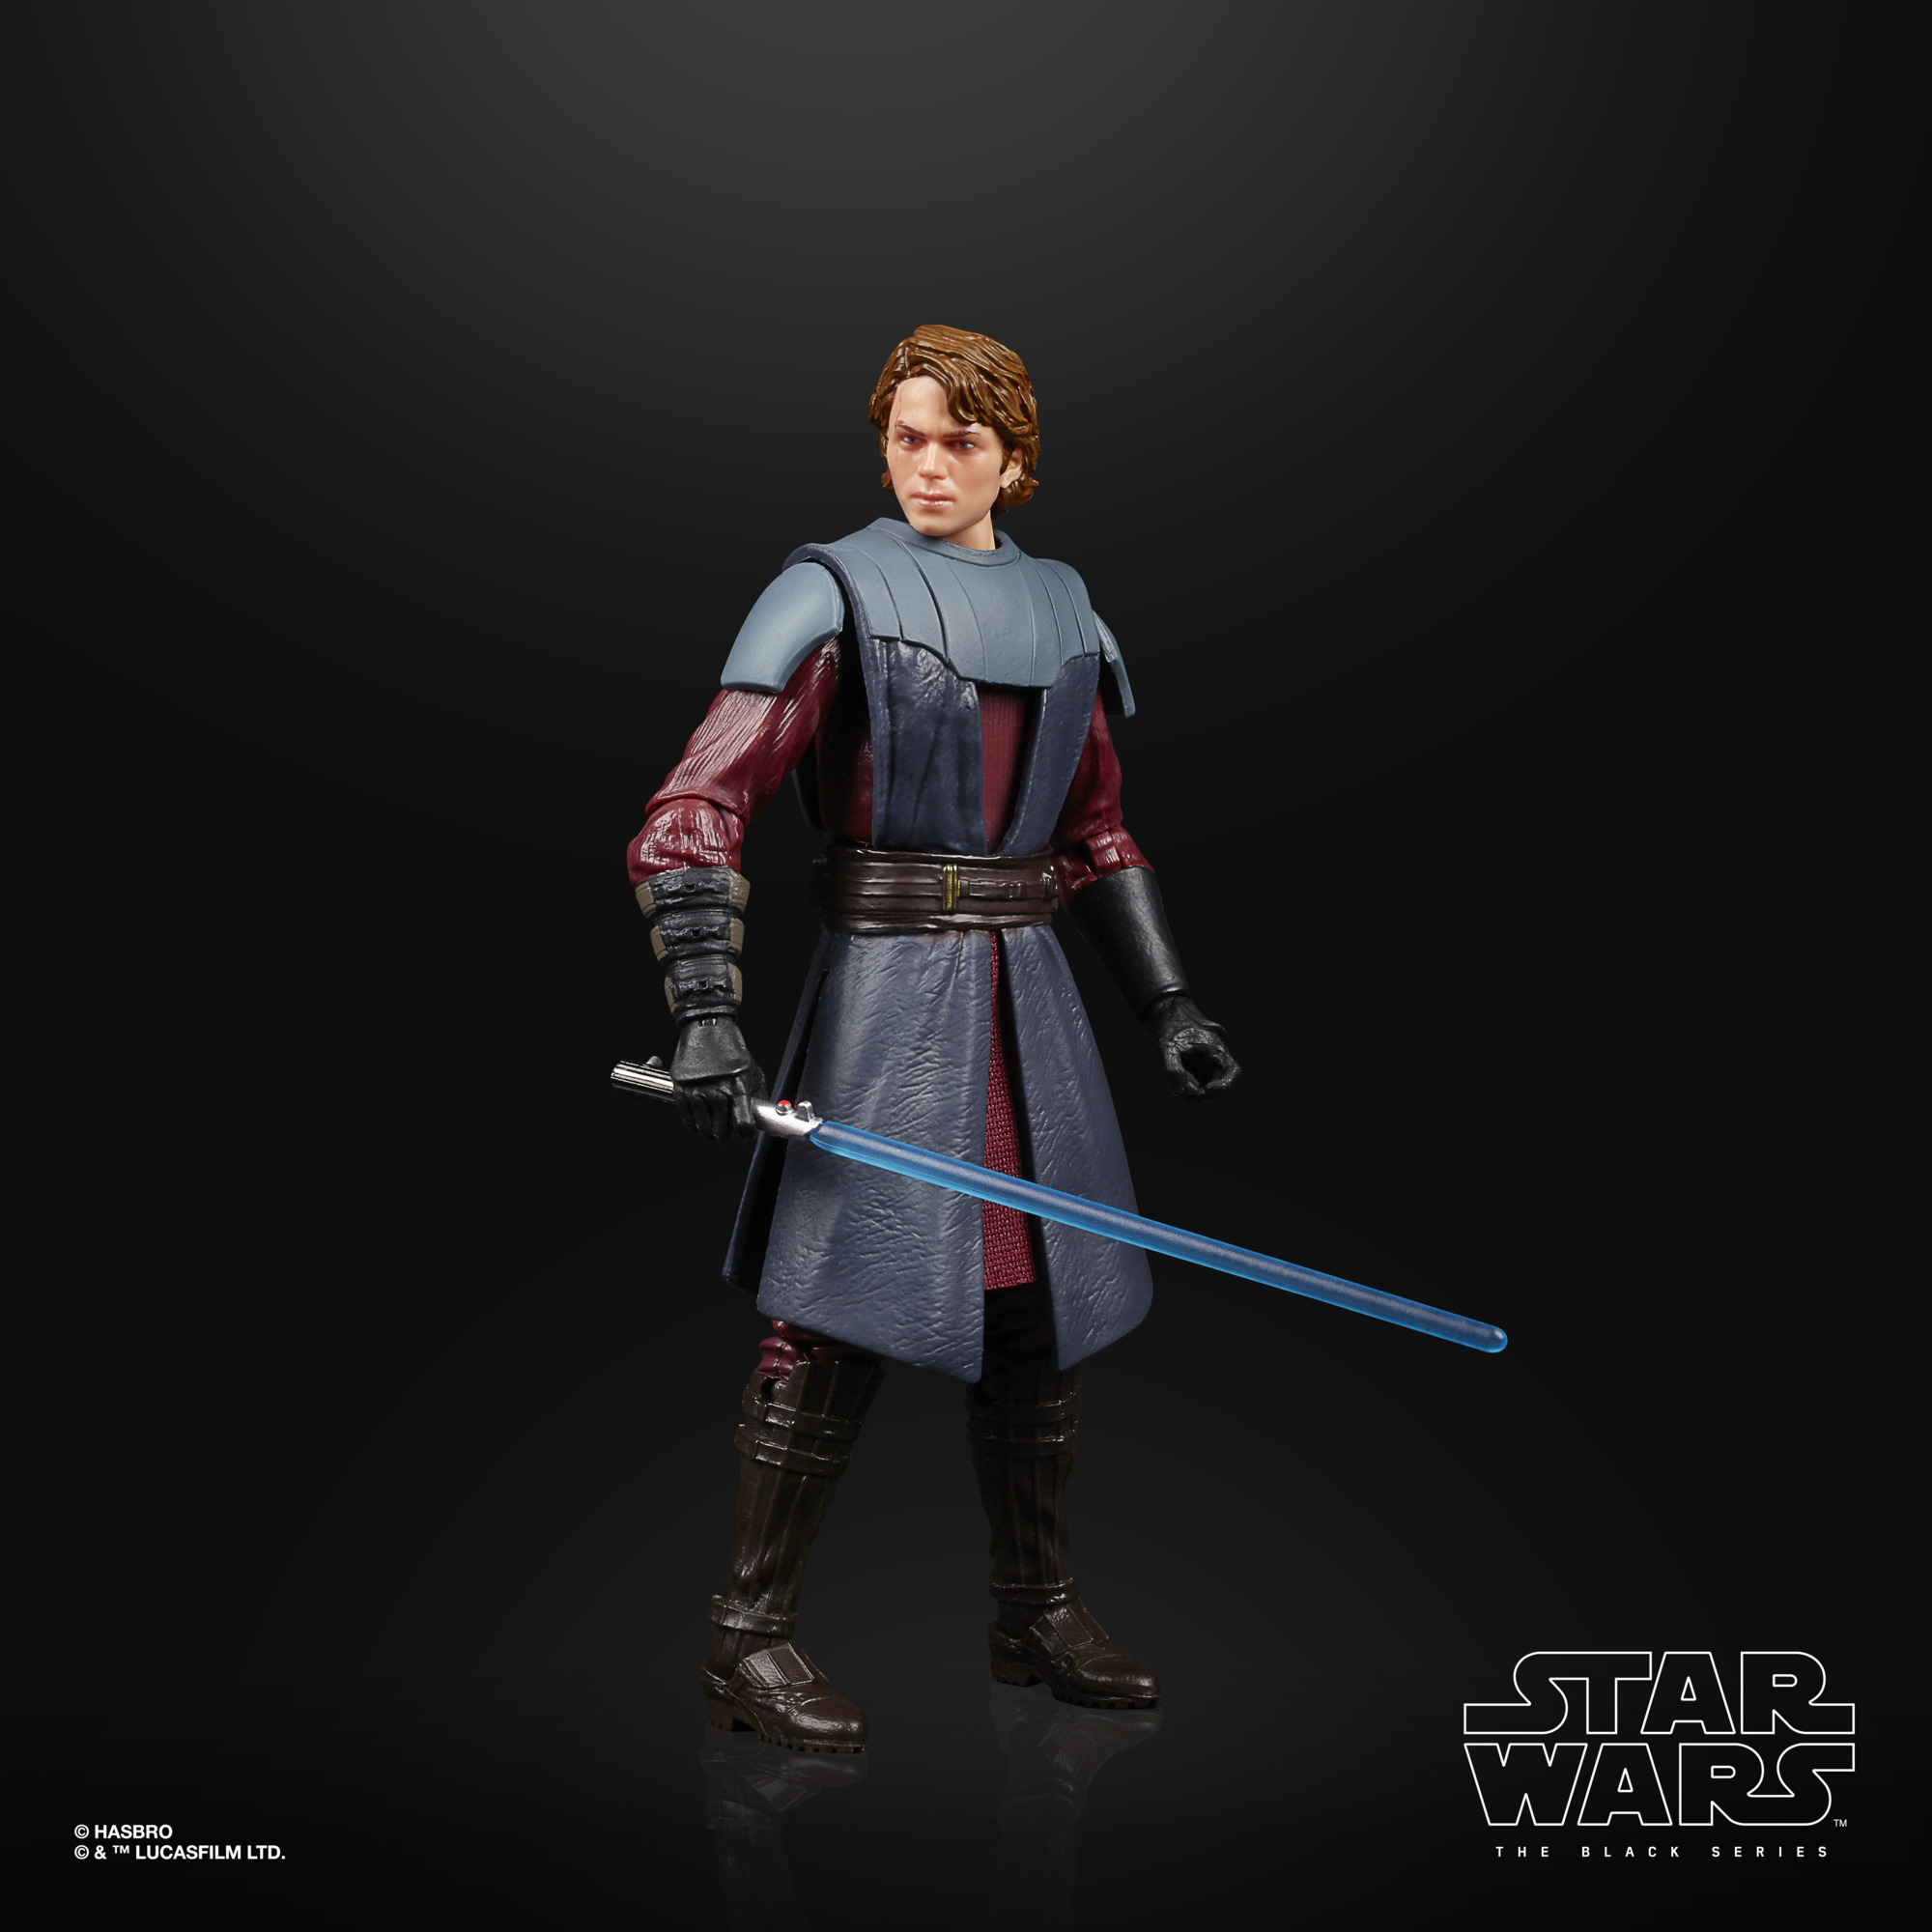 https://assets-global.website-files.com/5df3d636be93879b0f45cf96/607f26d3c4b703f19a0f93b3__%206-INCH%20ANAKIN%20SKYWALKER%20Figure%20-%20oop%20(1).jpg